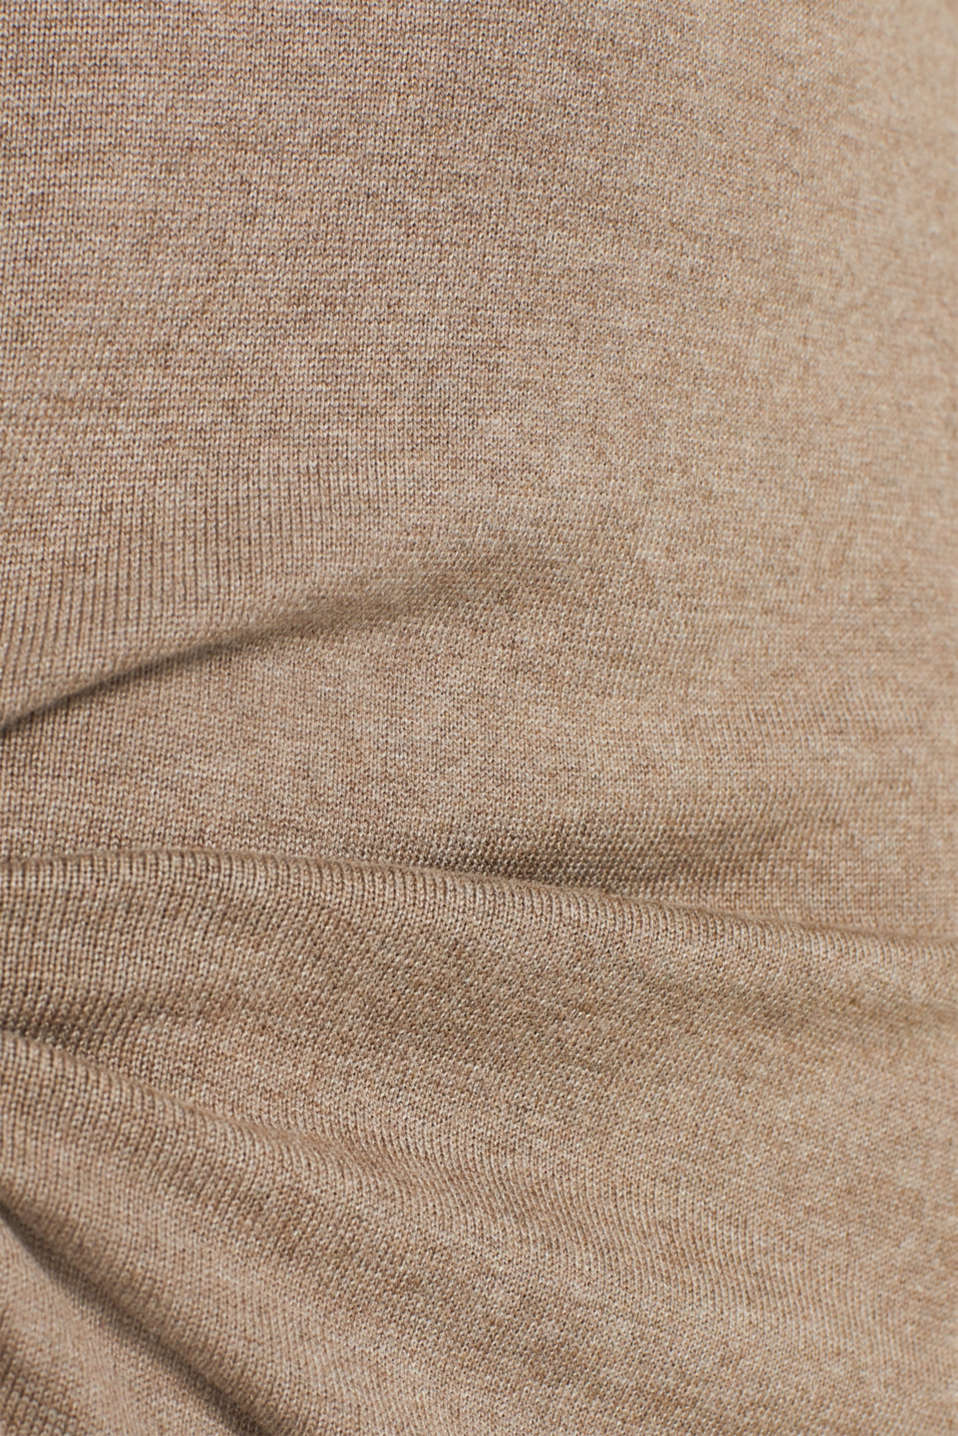 Dresses flat knitted, TAUPE 5, detail image number 5